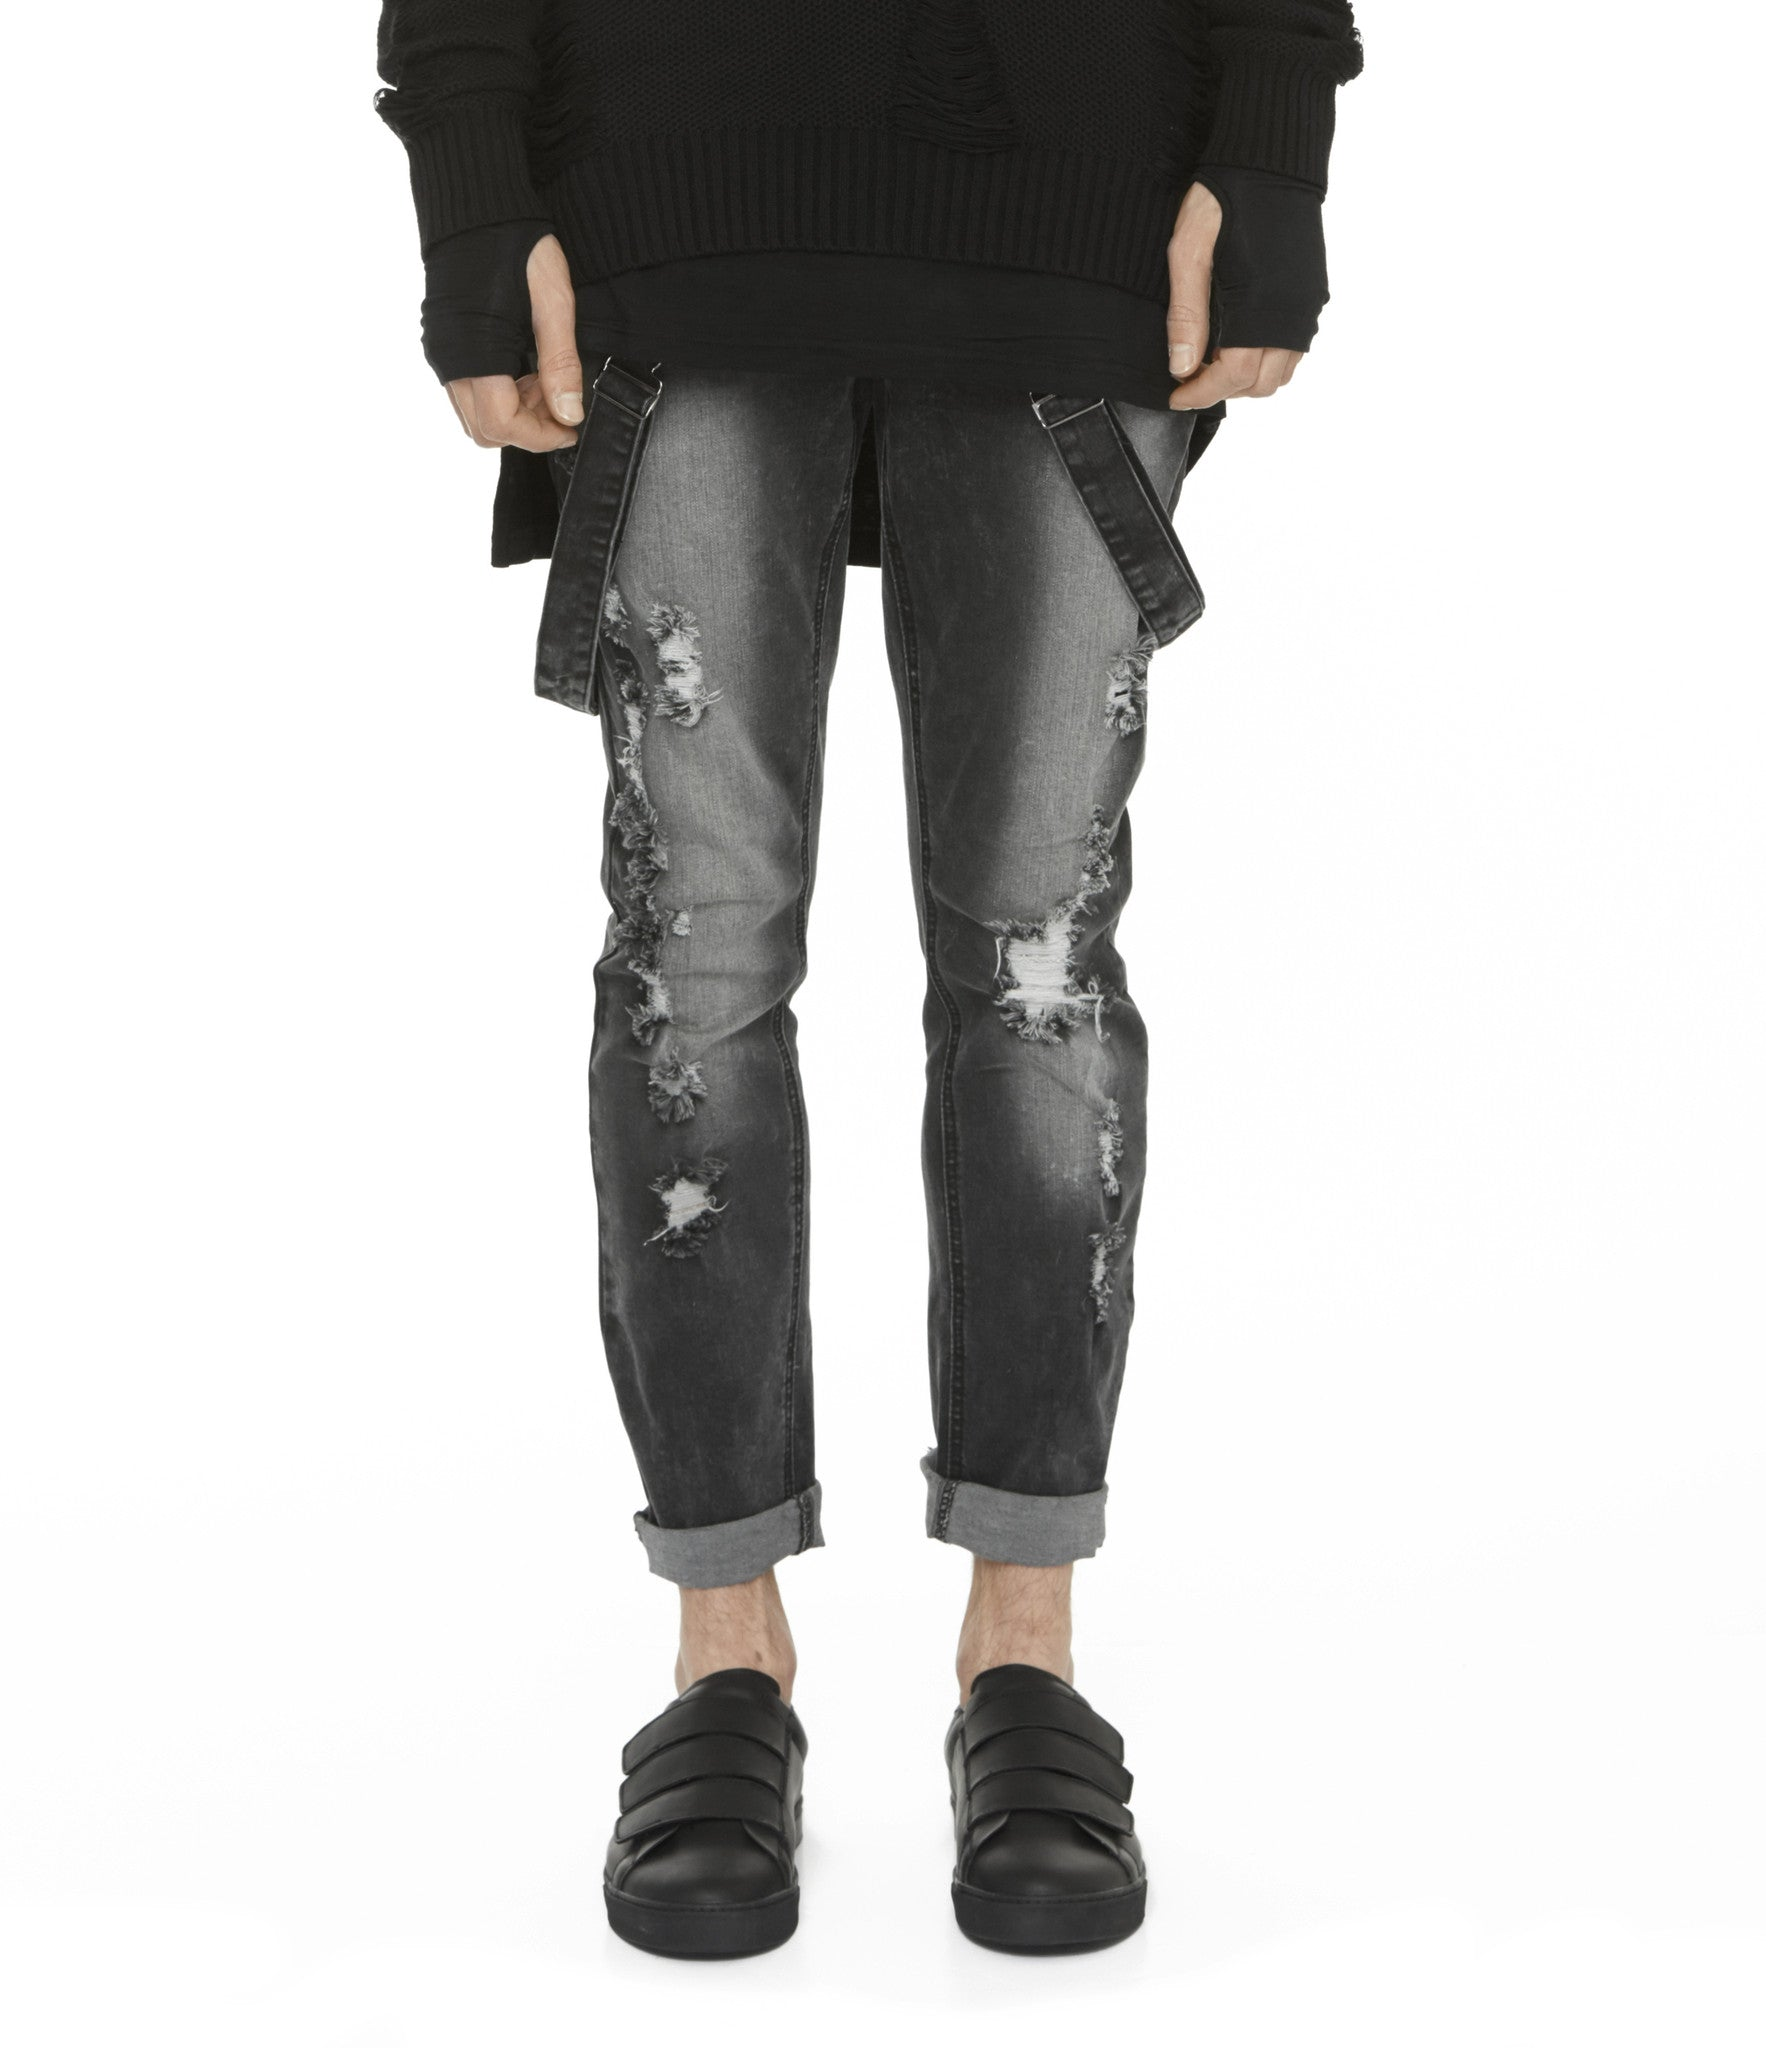 JN181 Distressed Stone Wash Dungaree Denim - Black - underated london - underatedco - 5